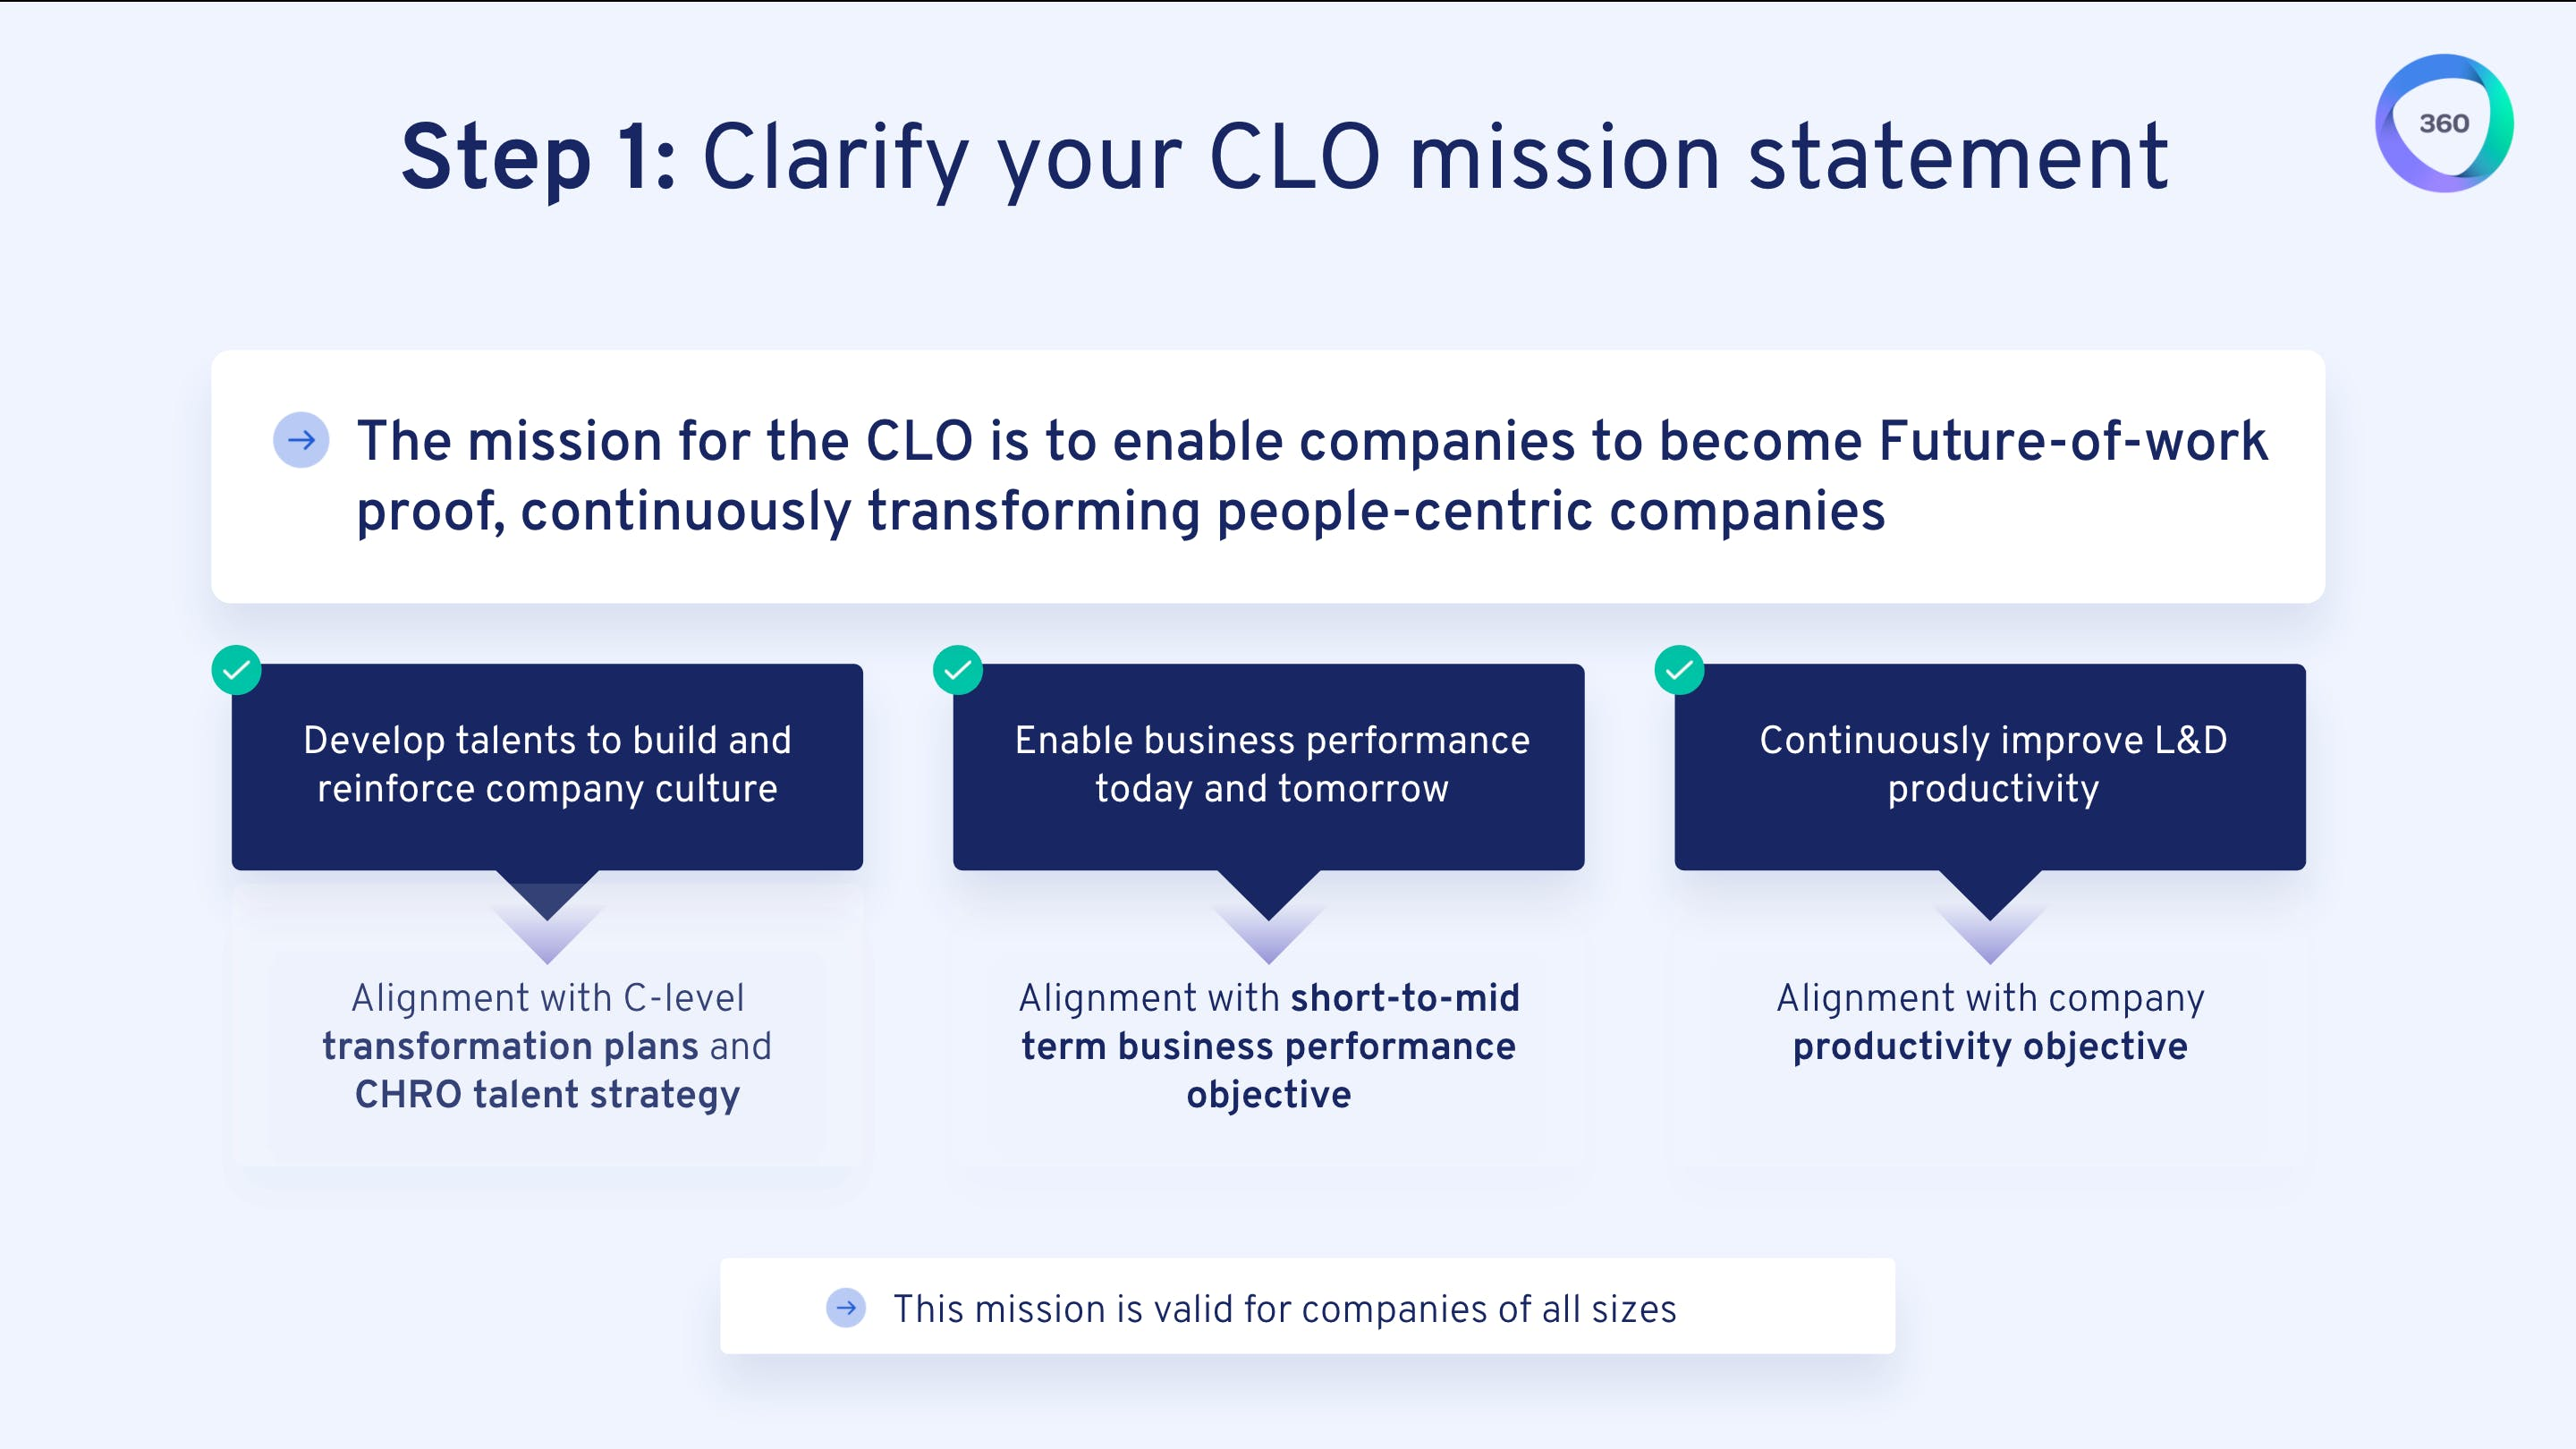 Step 1: Clarify your CLO mission statement